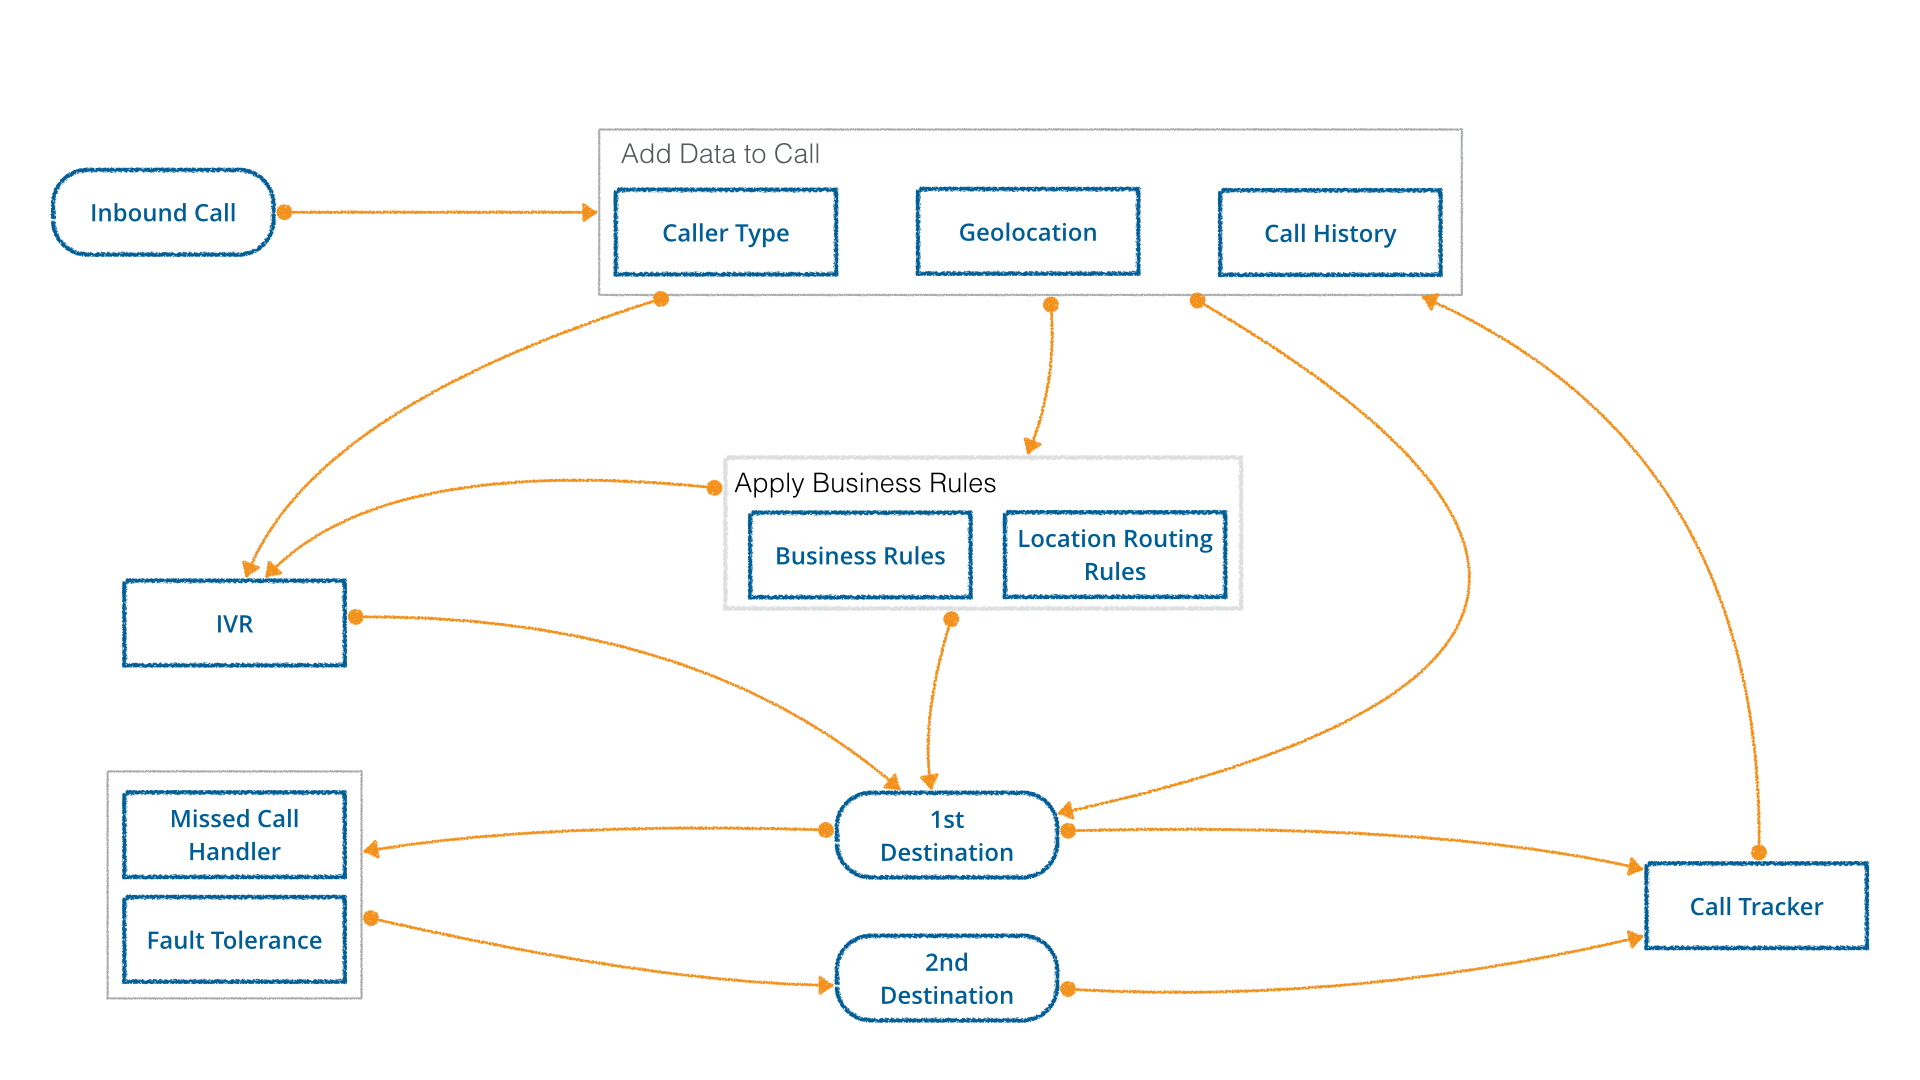 Call routing example: Calls might need to get routed along different paths depending on different situations to get to their primary or backup destination. All of this happens in fractions of a second and is just one of many ways the modules can interact with each other.